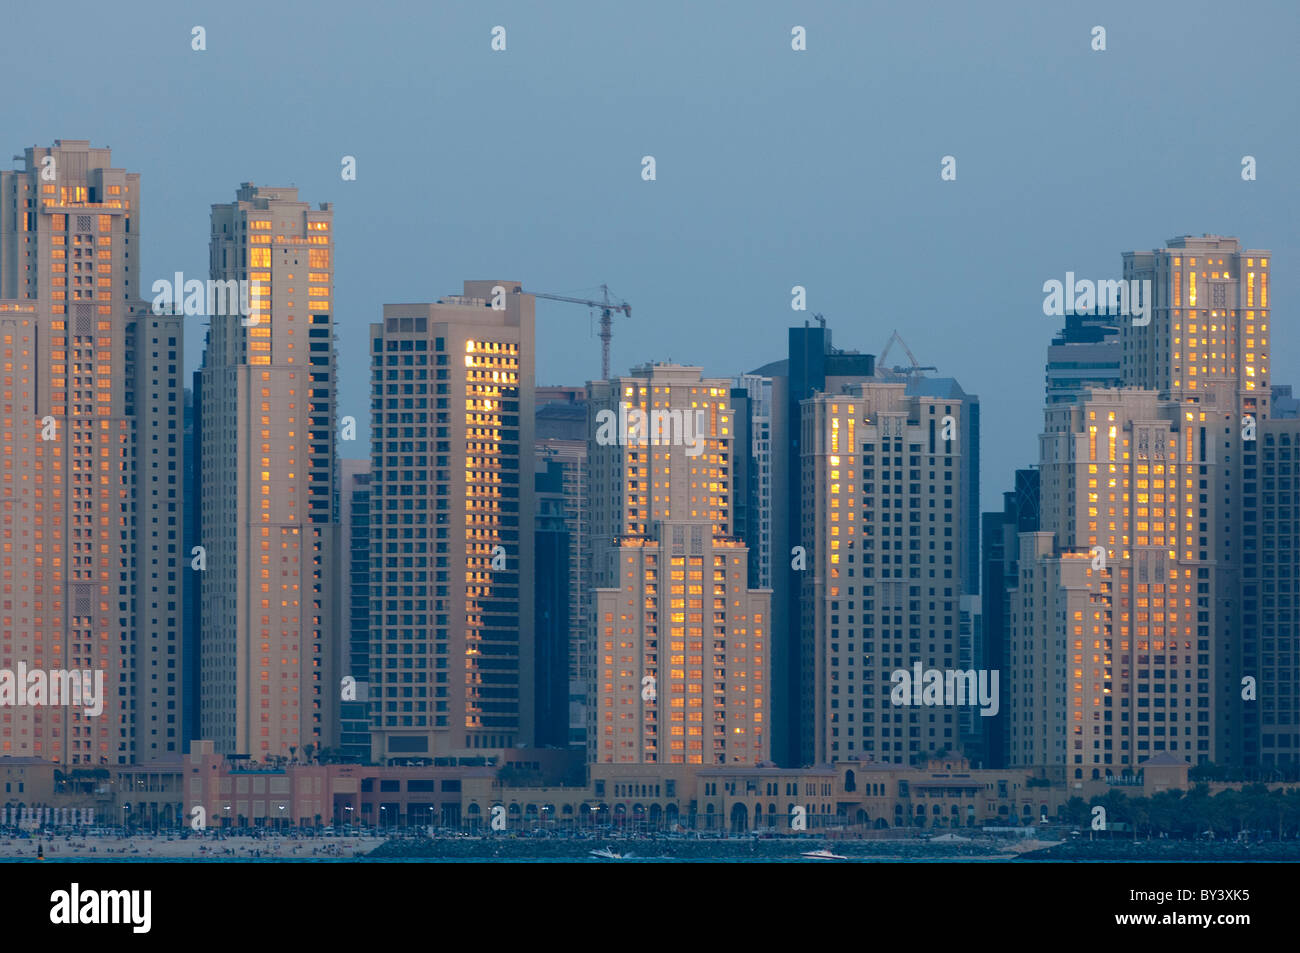 Sunset reflects of high rise buildings on Dubai's waterfront. - Stock Image